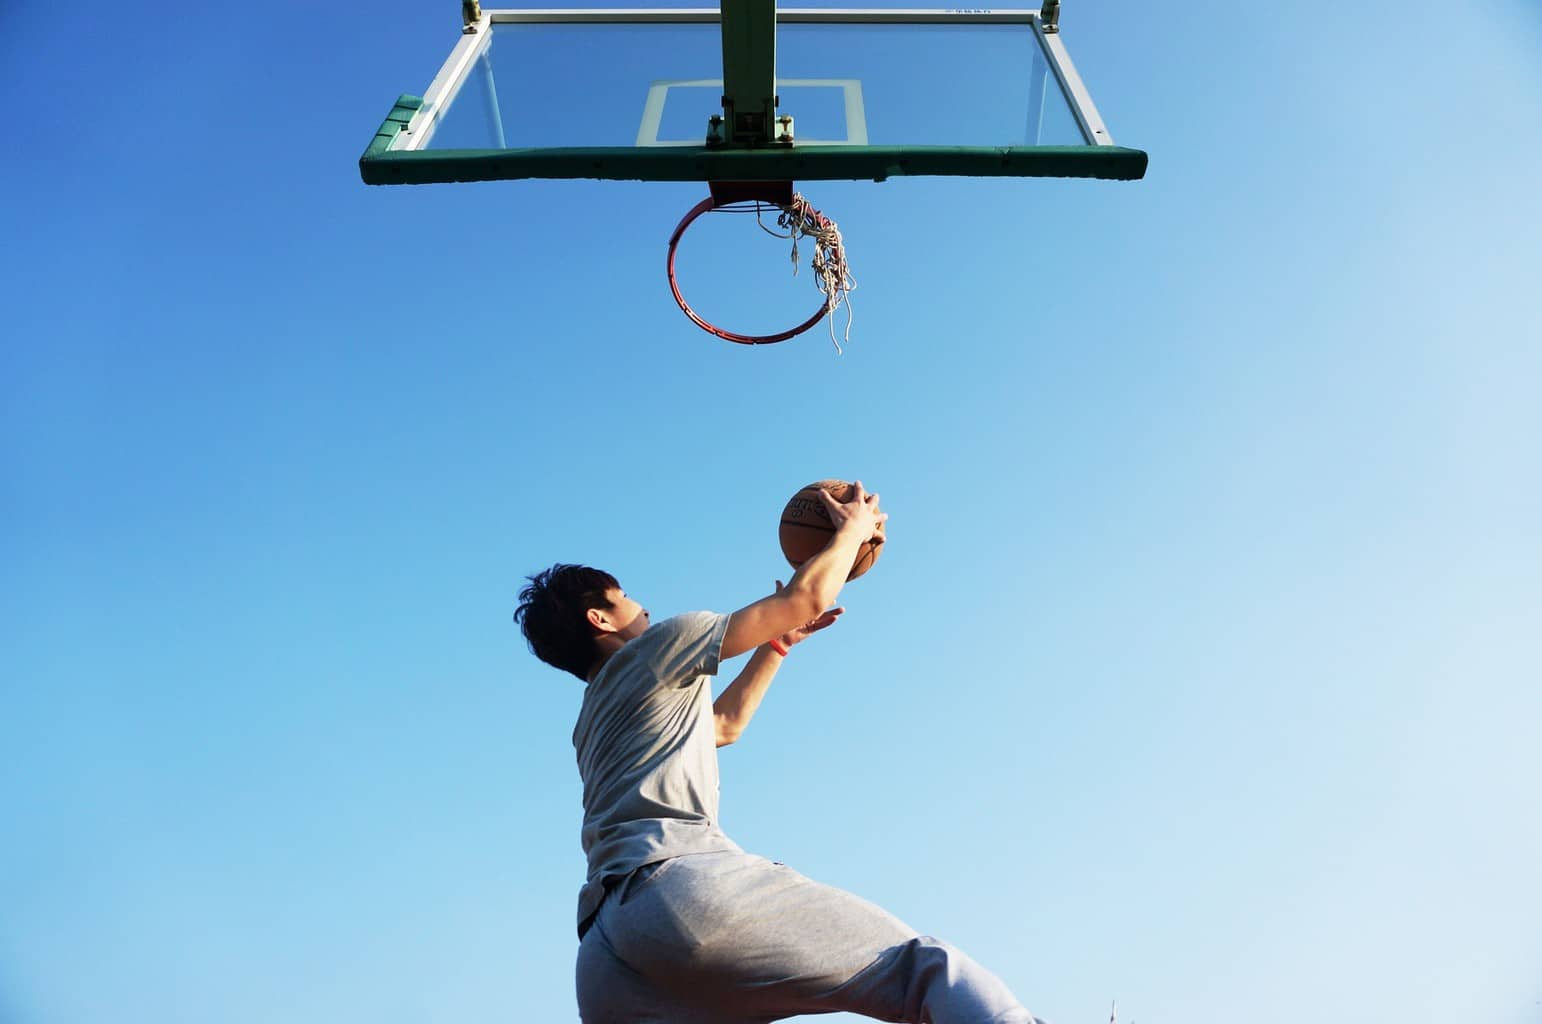 Man trying to shoot the ball in the basketball hoop